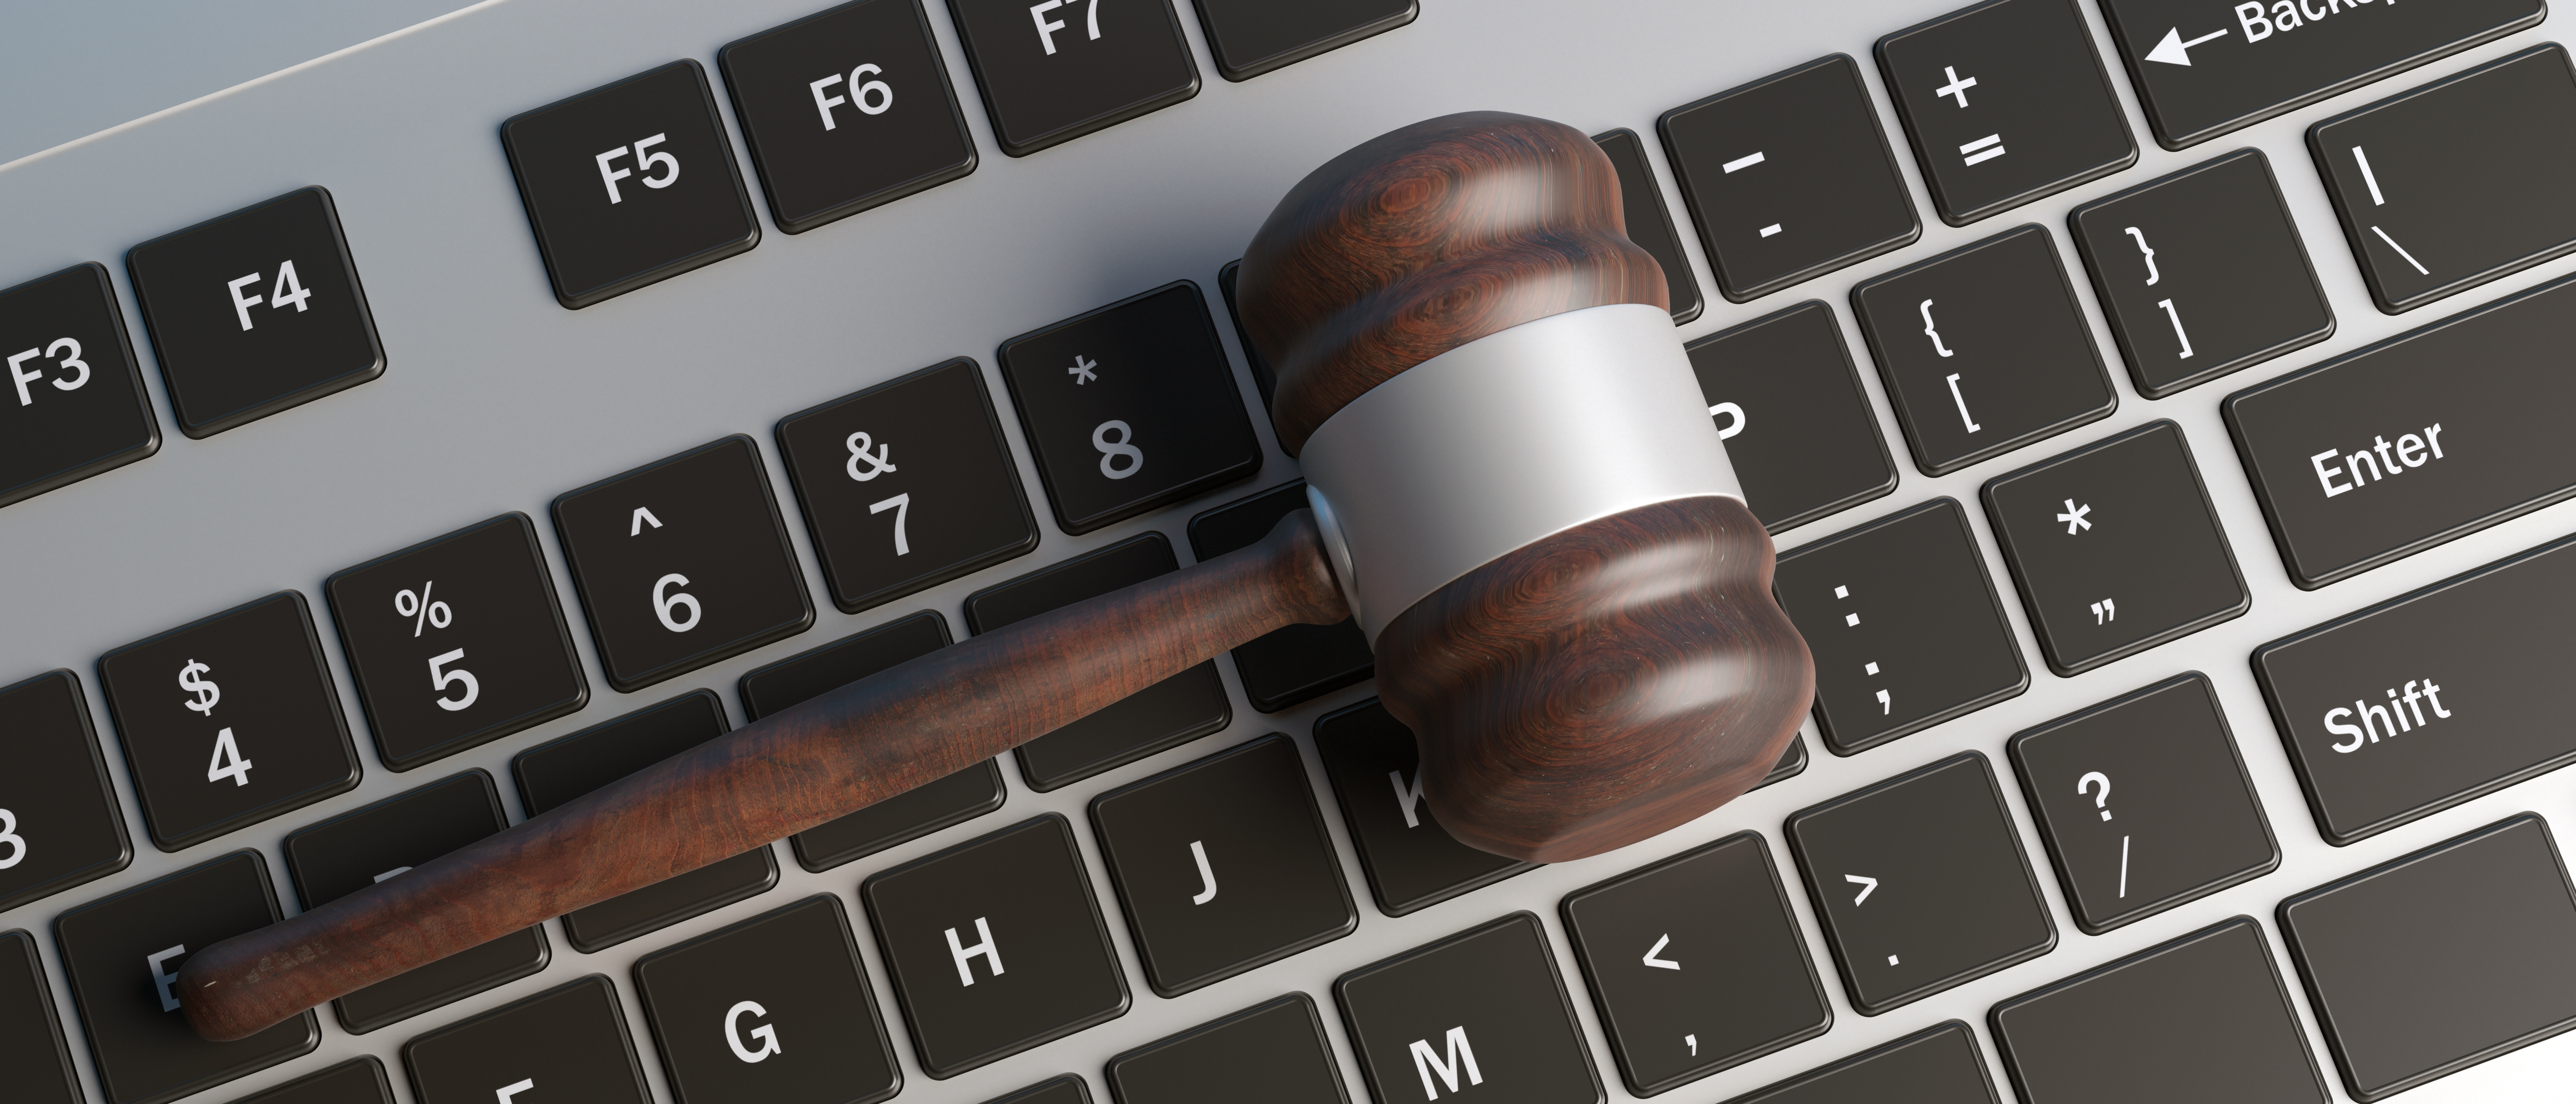 cyber-crime-concept-law-gavel-on-computer-keyboard-WENM2GD